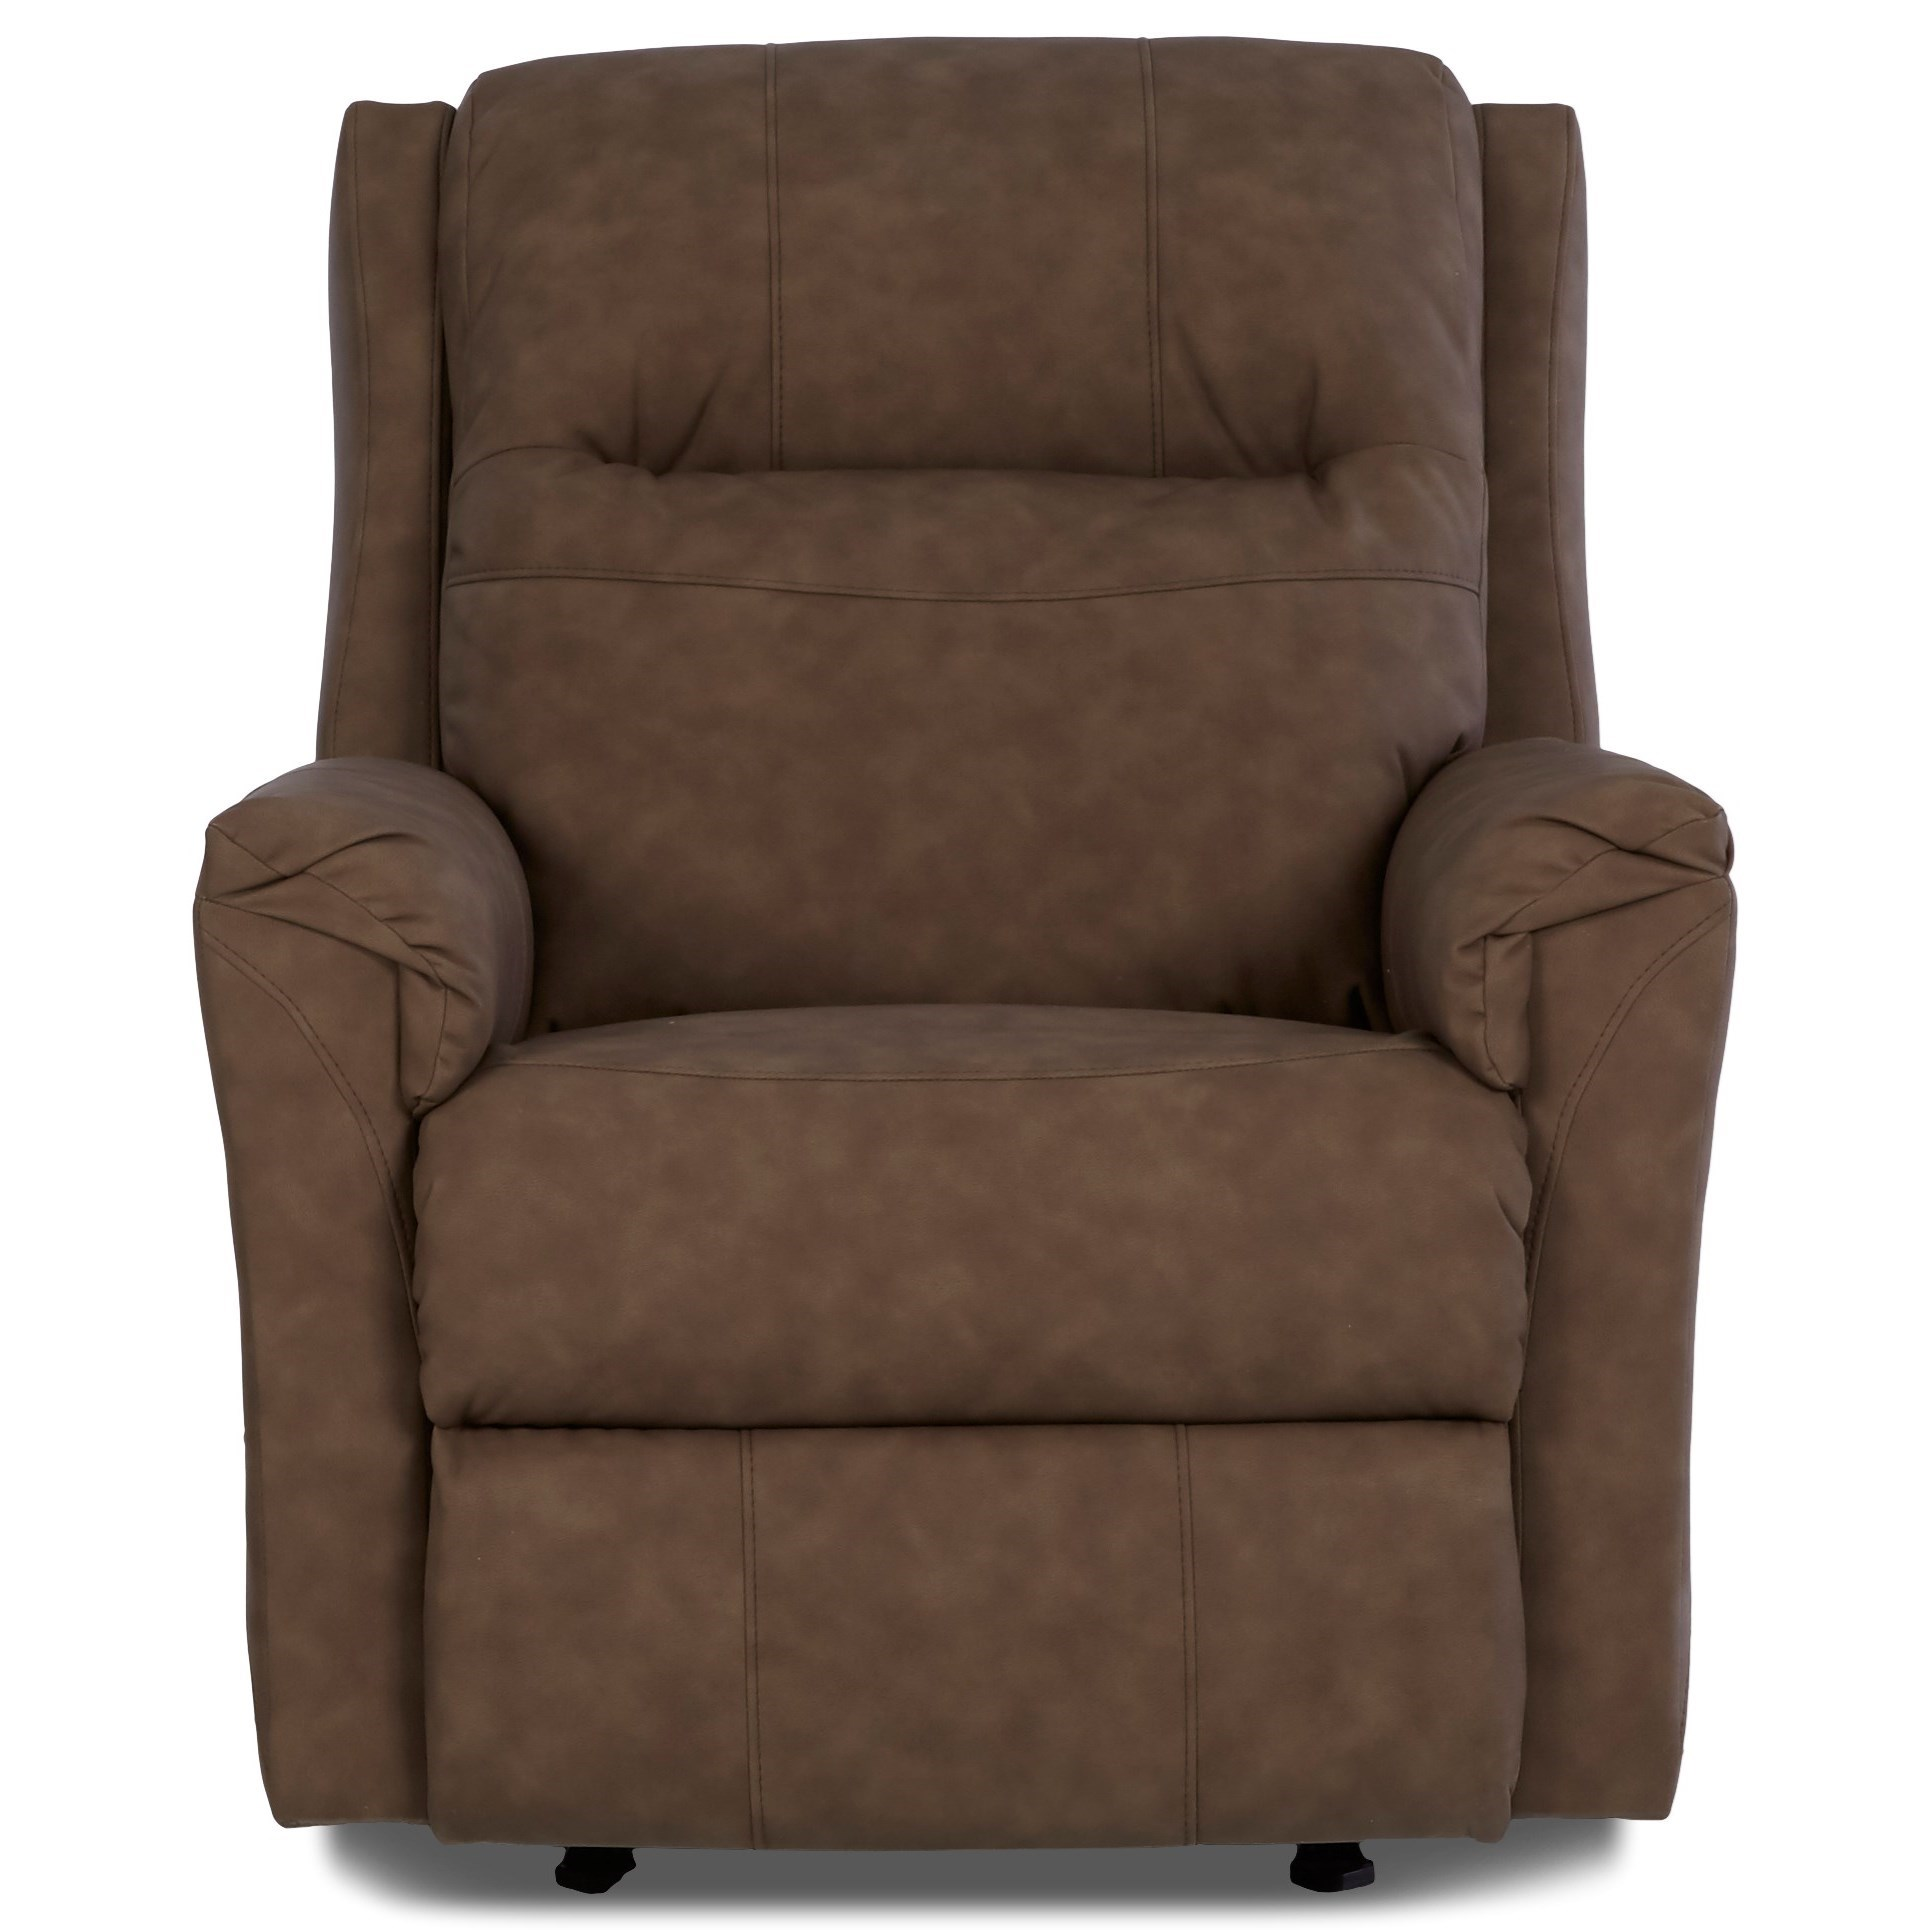 Klaussner Evans Power Recliner with Power Headrest - Item Number: 88143-8 PWRC